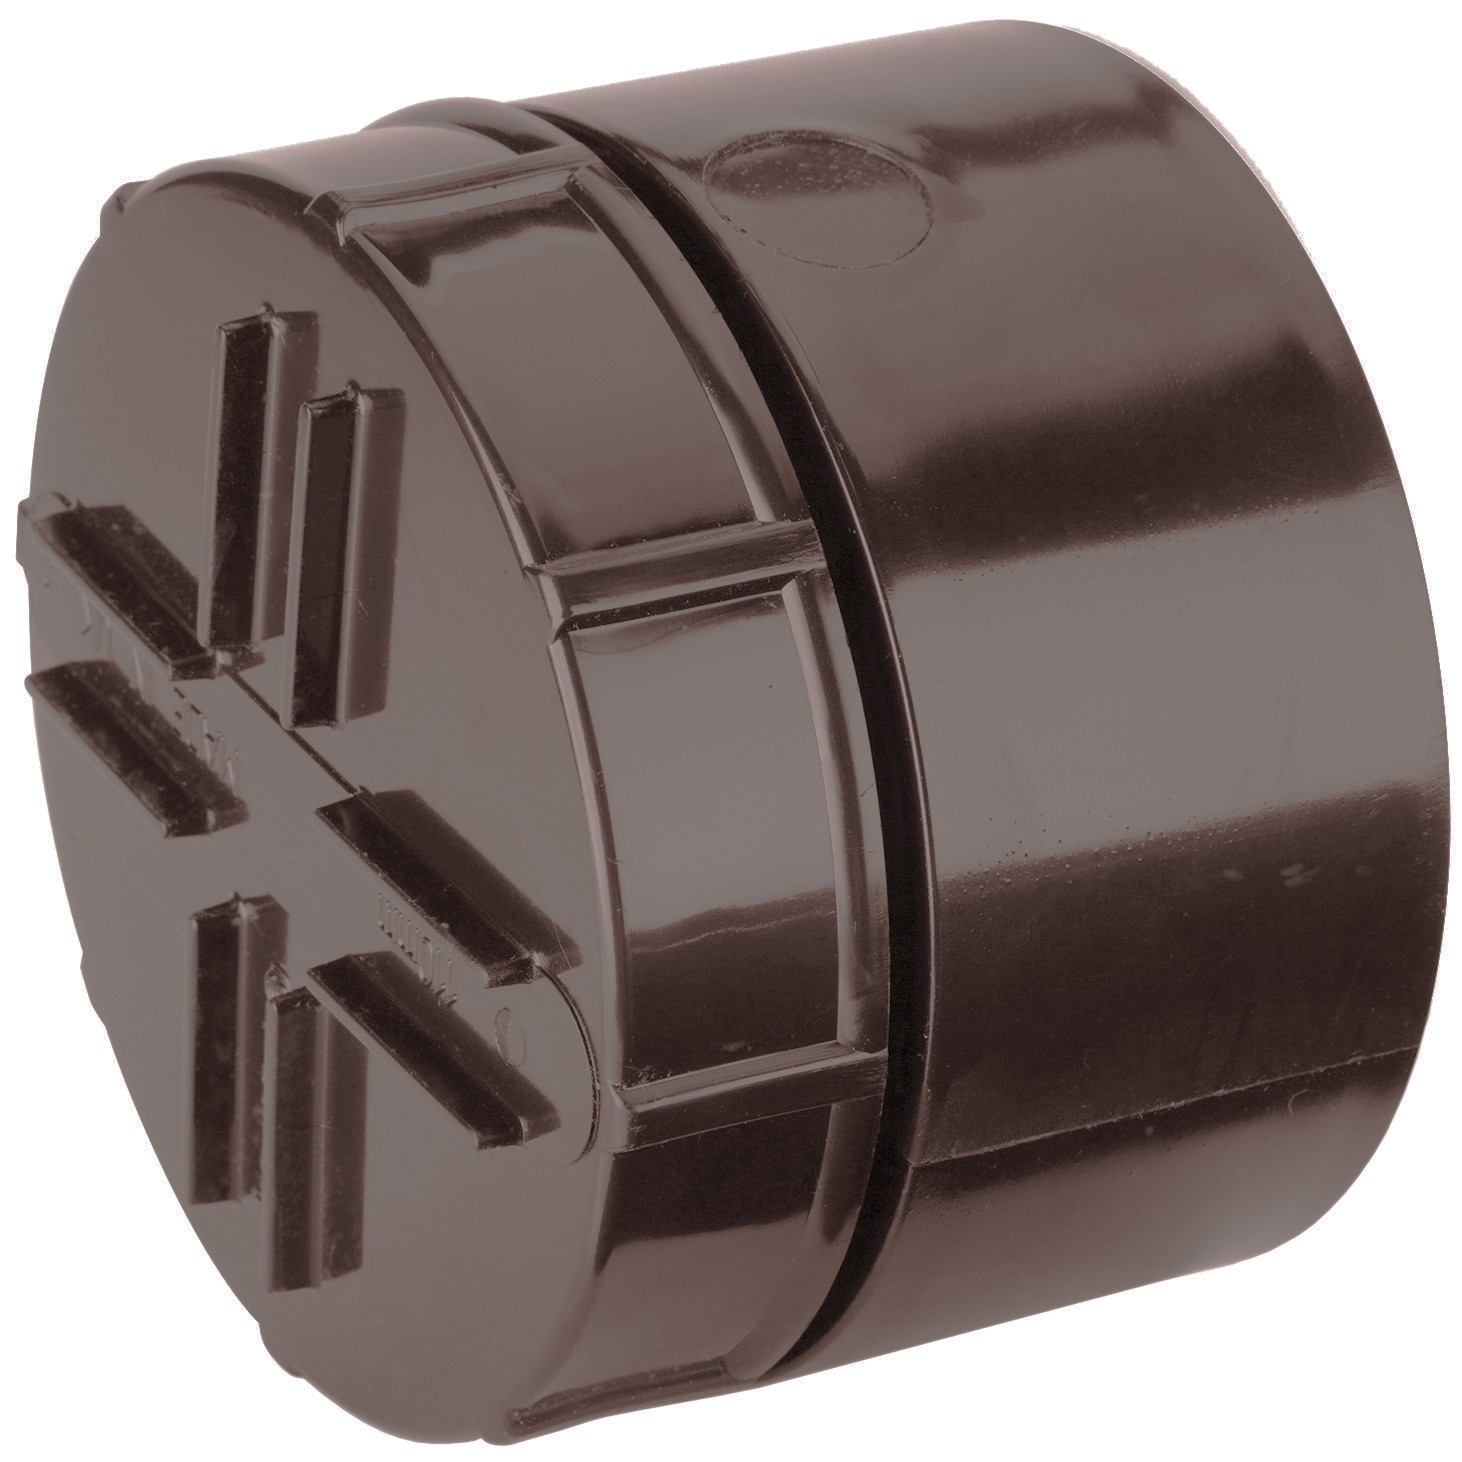 Polypipe 110mm Soil Socket Tail Screwed Access Cap - Brown